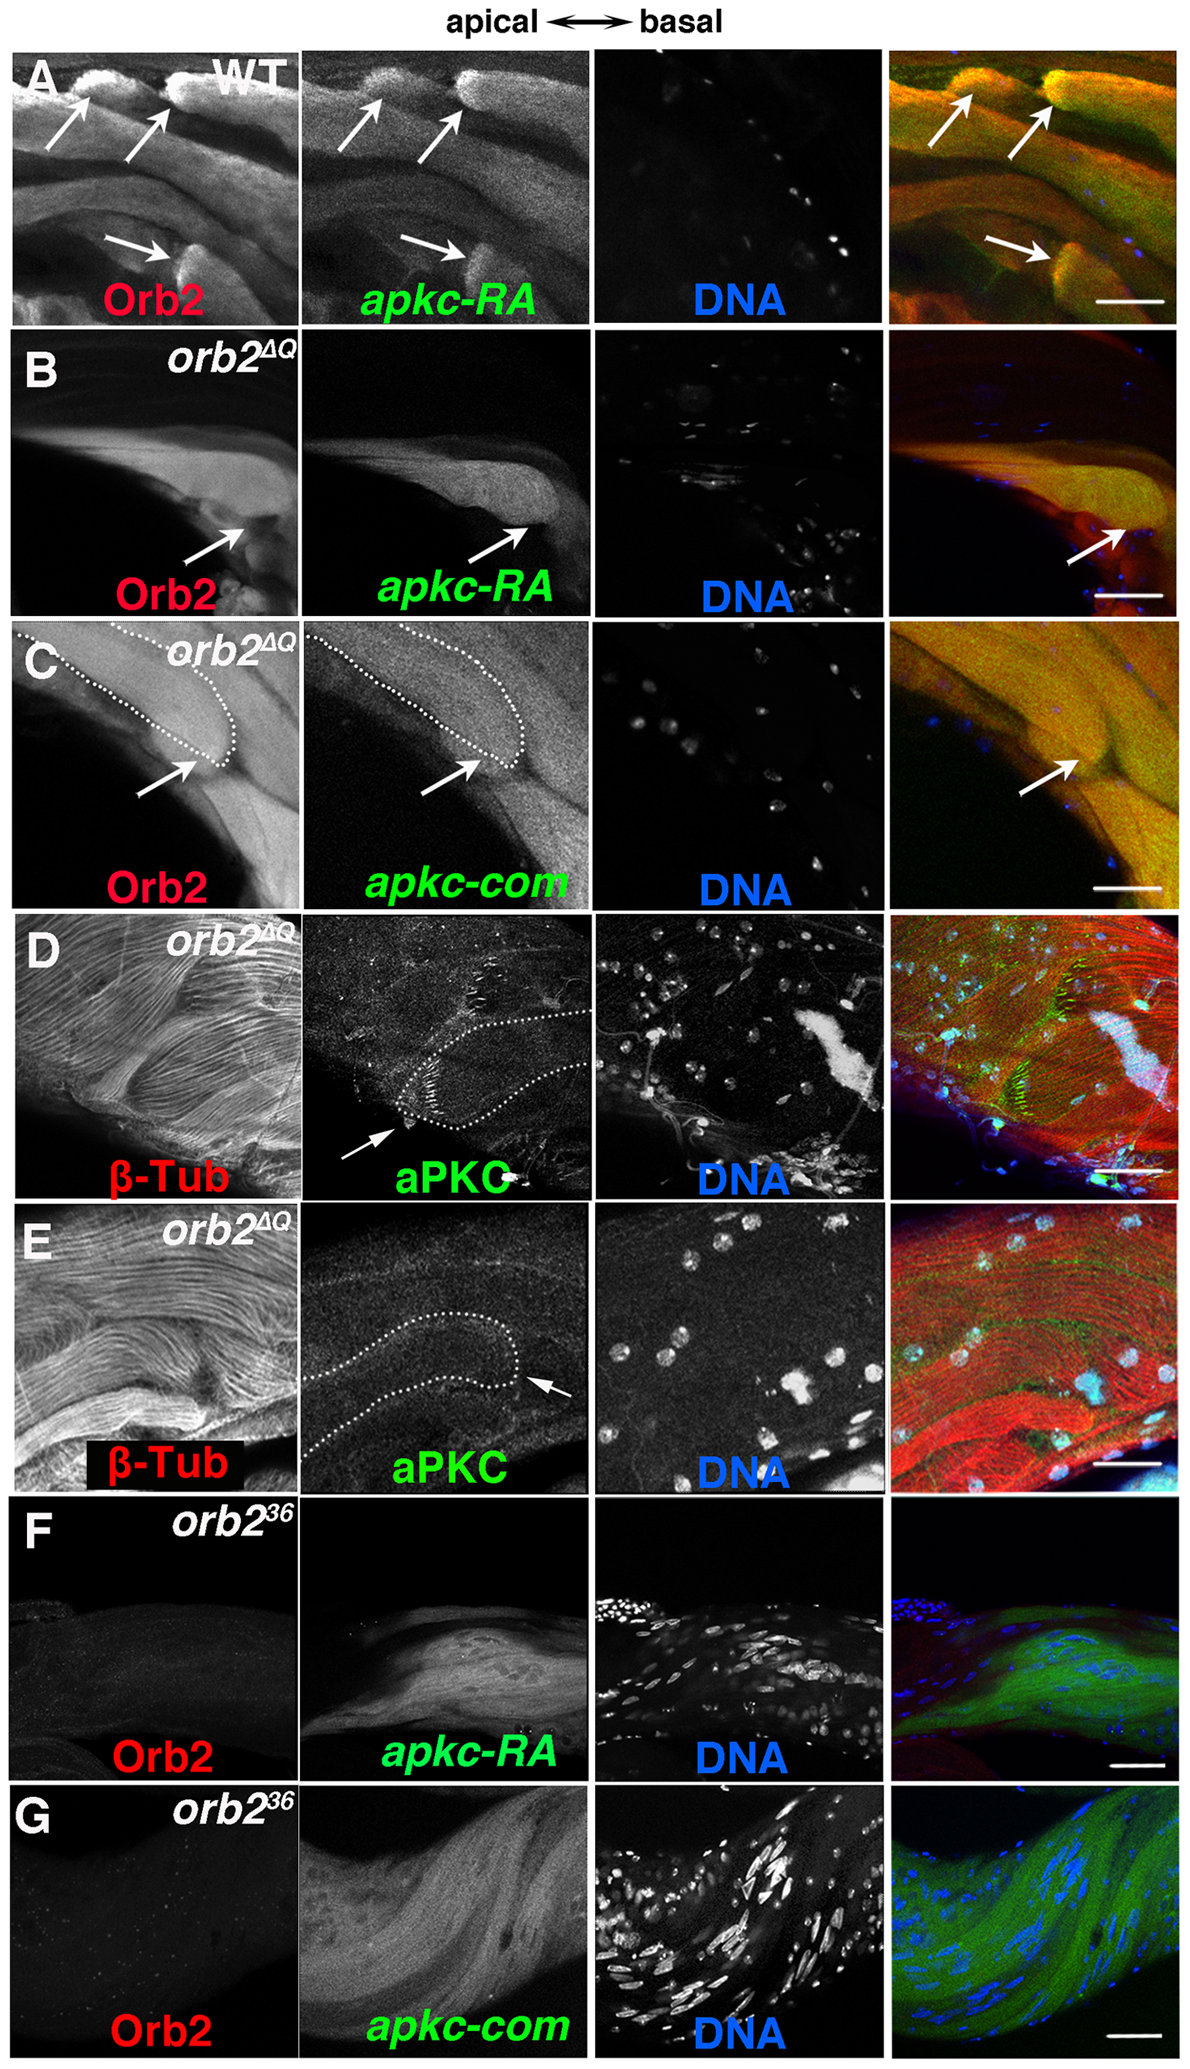 <i>orb2</i> is required for polarized accumulation of <i>apkc-RA</i> mRNA and aPKC protein in spermatid cysts.